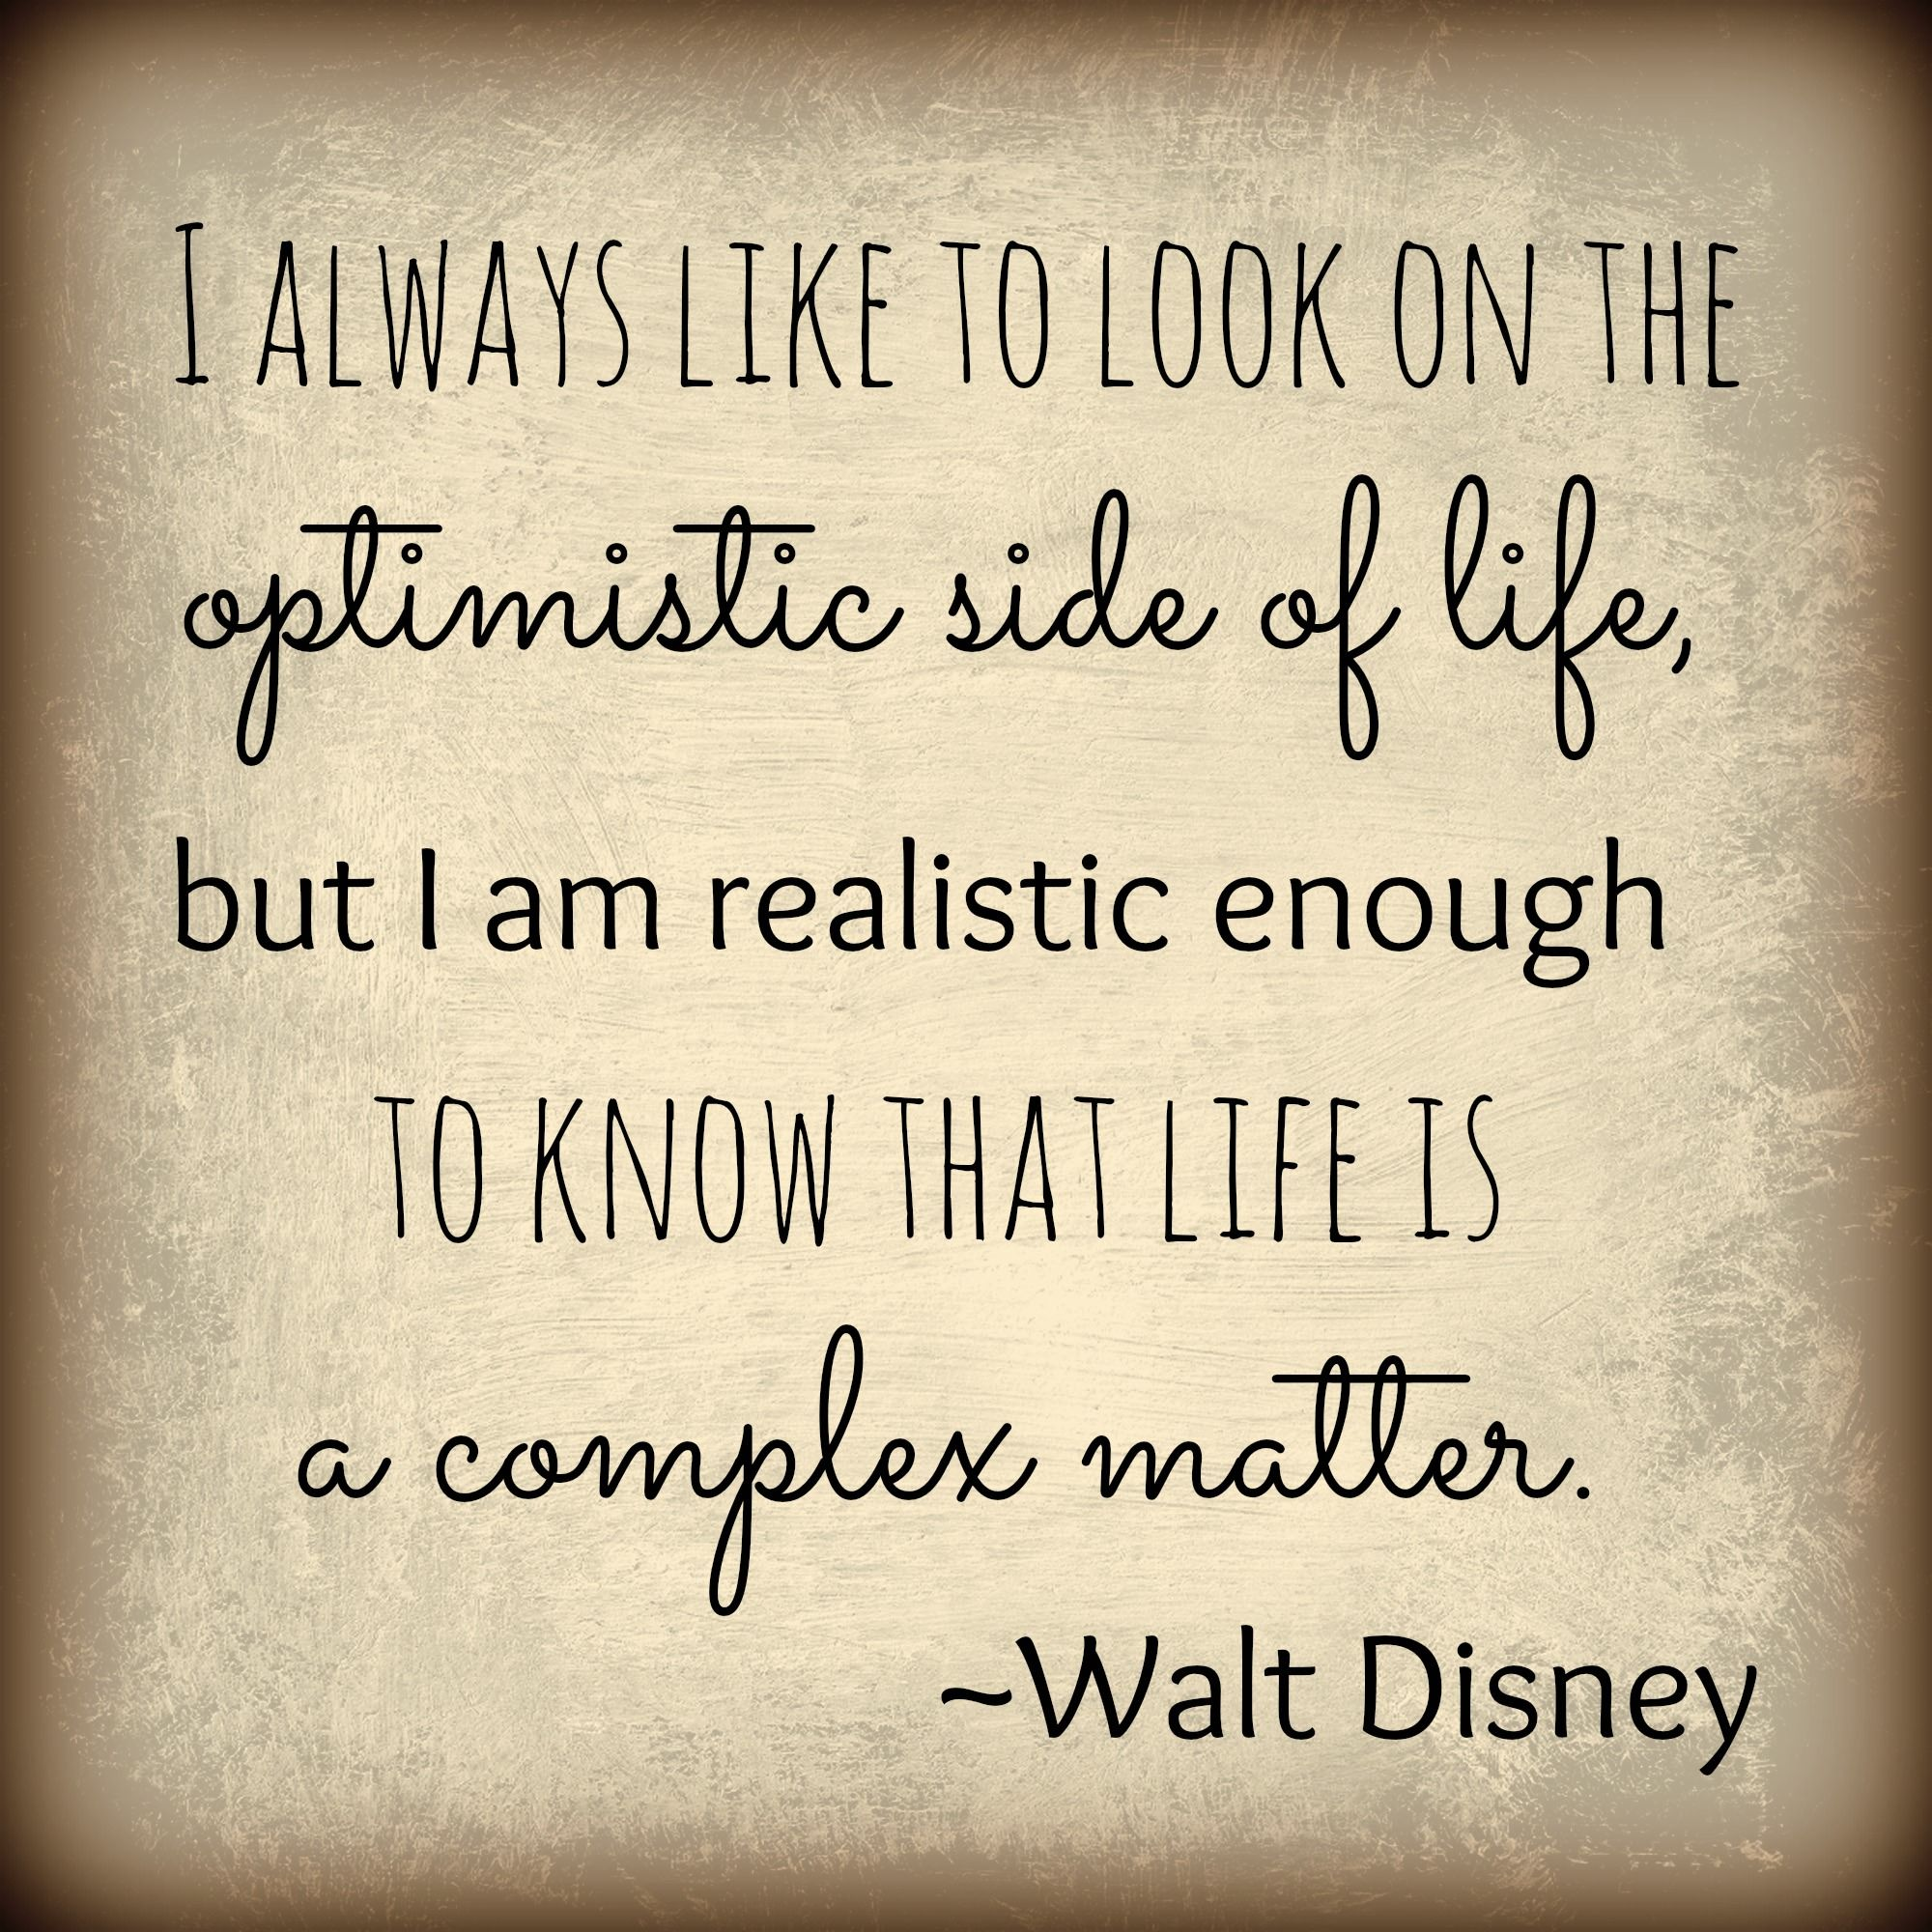 Disney Motivational Quotes Pinterest: It's Always Best To Be Positive But Some Times Life Gets A